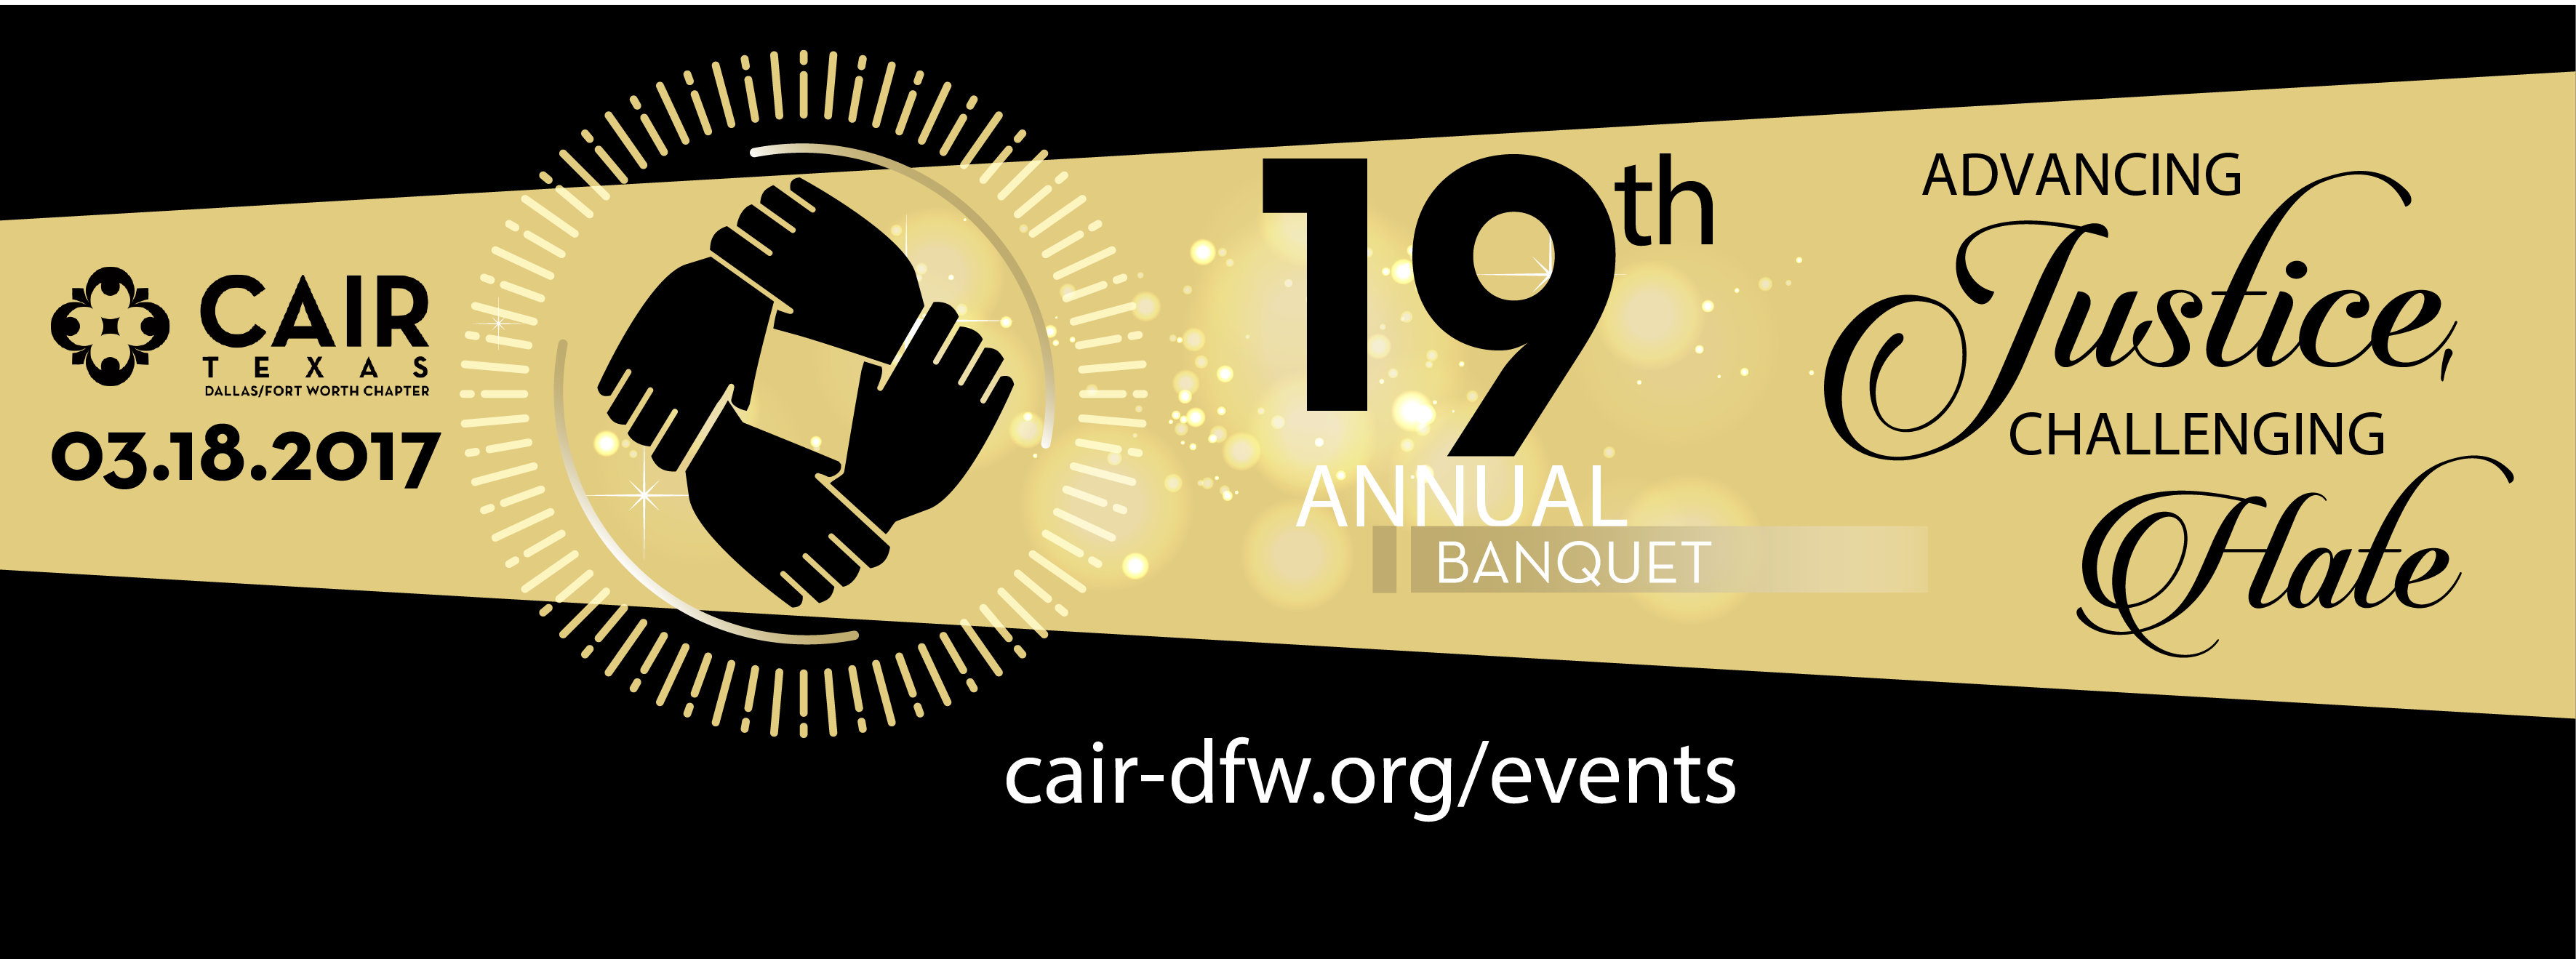 CAIR_Banquet2016_banners.png